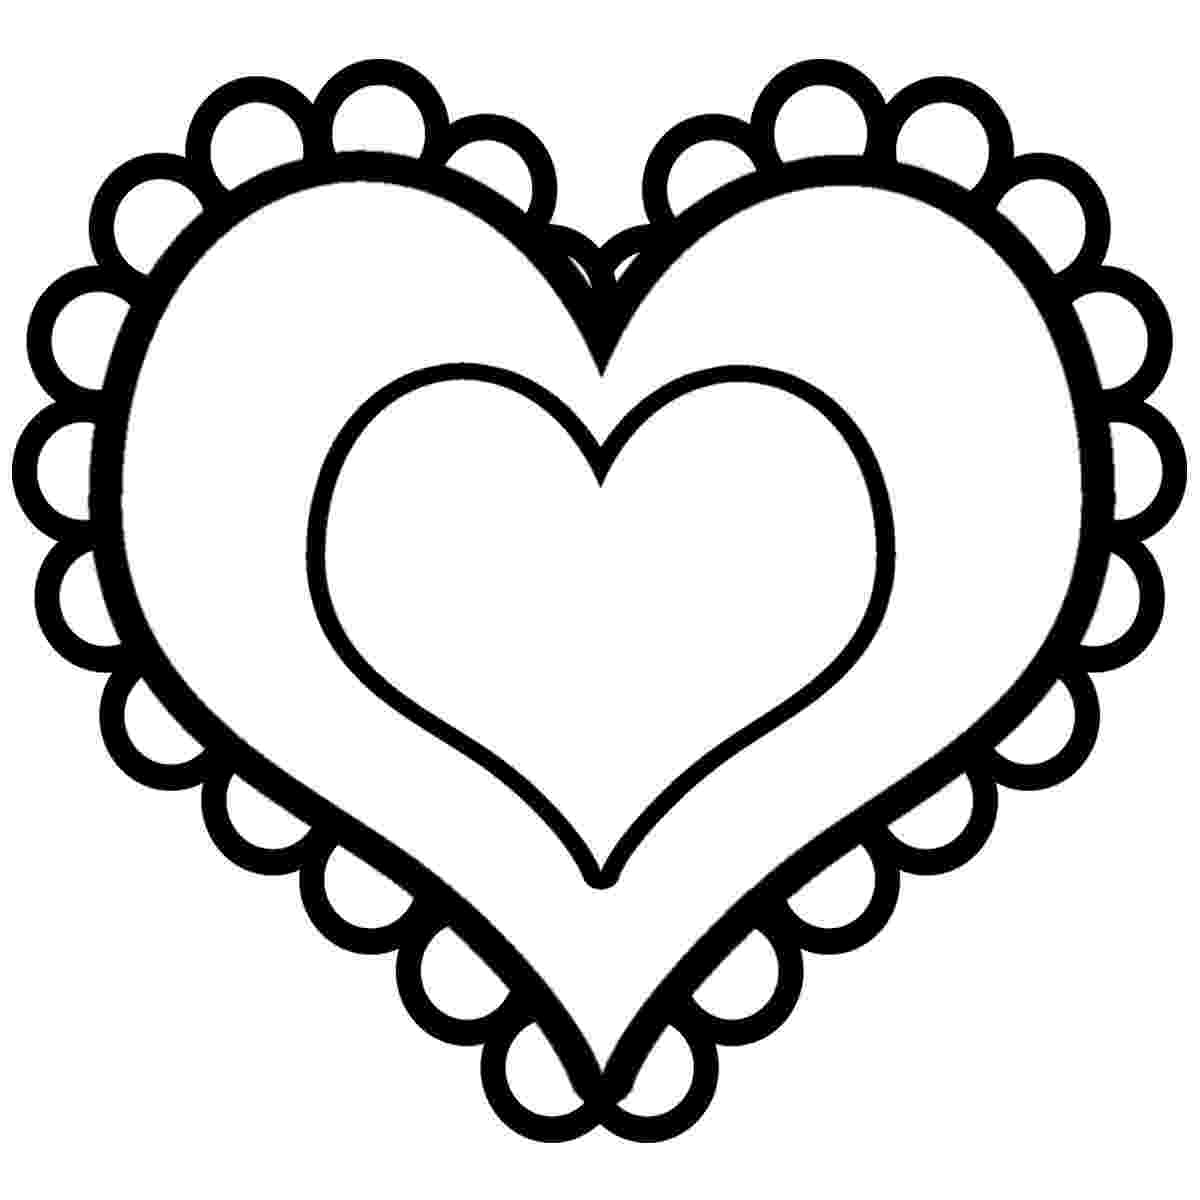 heart coloring pictures free printable heart coloring pages for kids heart pictures coloring